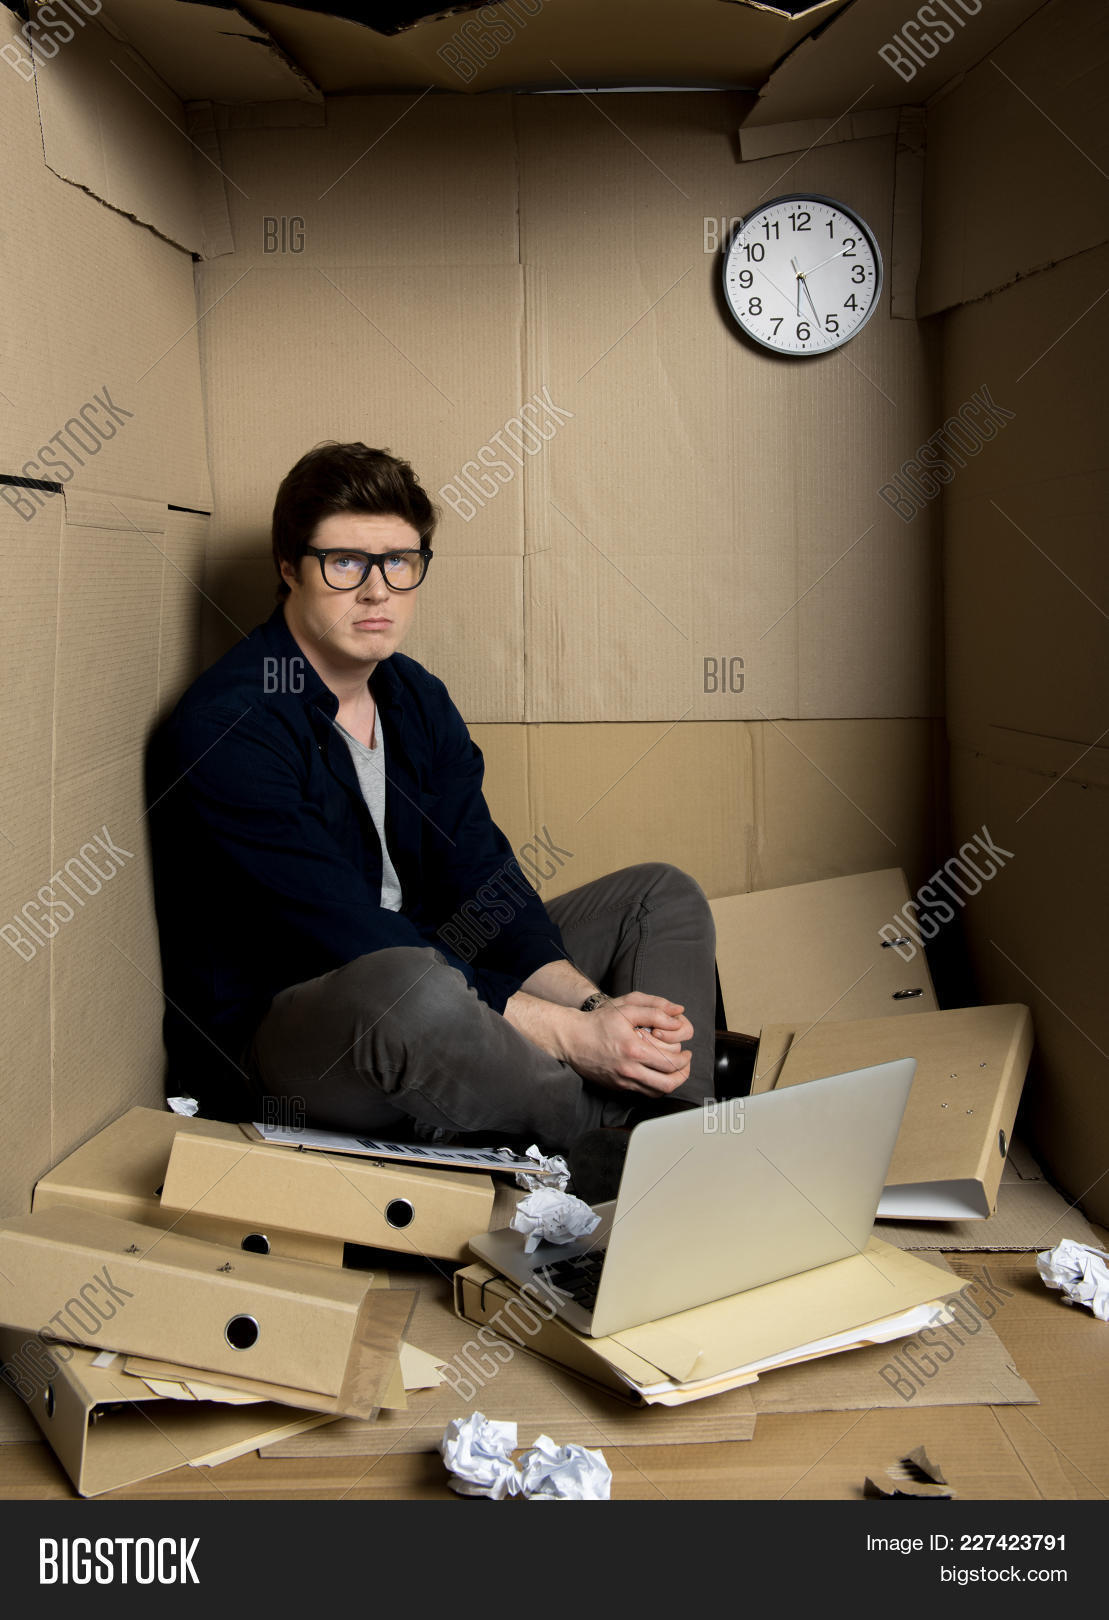 box,business,businessman,cardboard,carton,caucasian,chaos,concept,confined,cramped,crumpled,depressed,disappointed,discomfort,employee,frustrated,full,gadget,glasses,guy,hopeless,indoor,inside,laptop,length,little,male,man,manager,narrow,office,one,overcrowding,paper,pasteboard,portrait,restricted,room,sad,sit,small,space,straitened,technology,tight,tired,uncomfortable,unhappy,work,young